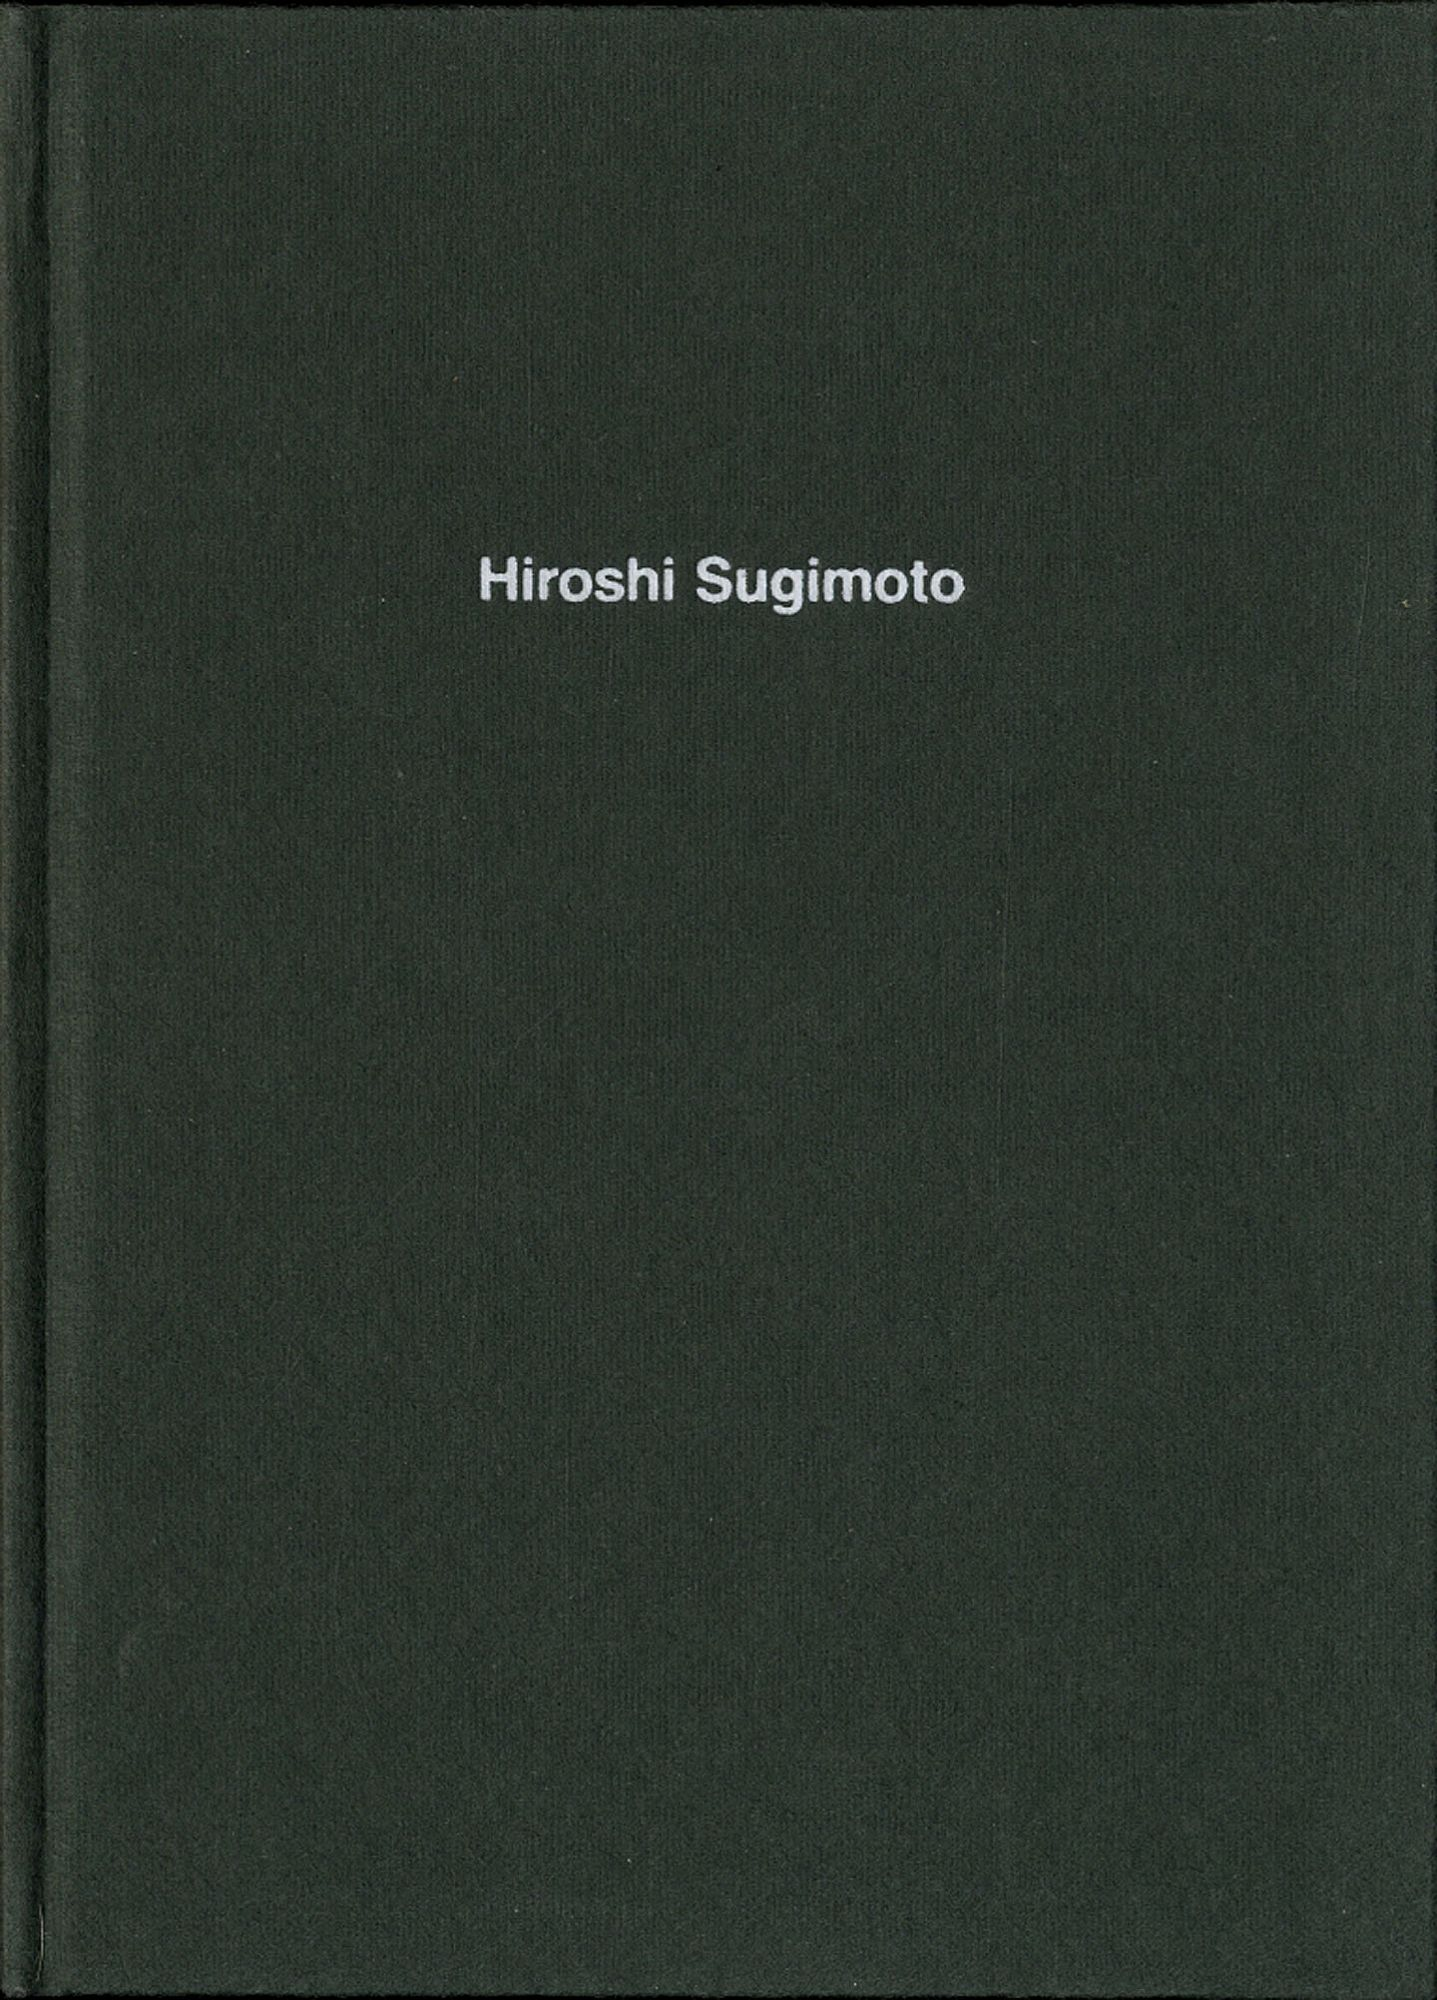 Hiroshi Sugimoto: A Near Complete Collection of 45 Books and Catalogues [All First Edition, First Printing; All (except one) in Fine or As New Condition; Most Titles SIGNED; Some Titles Limited Editions; Includes Additional Ephemera]